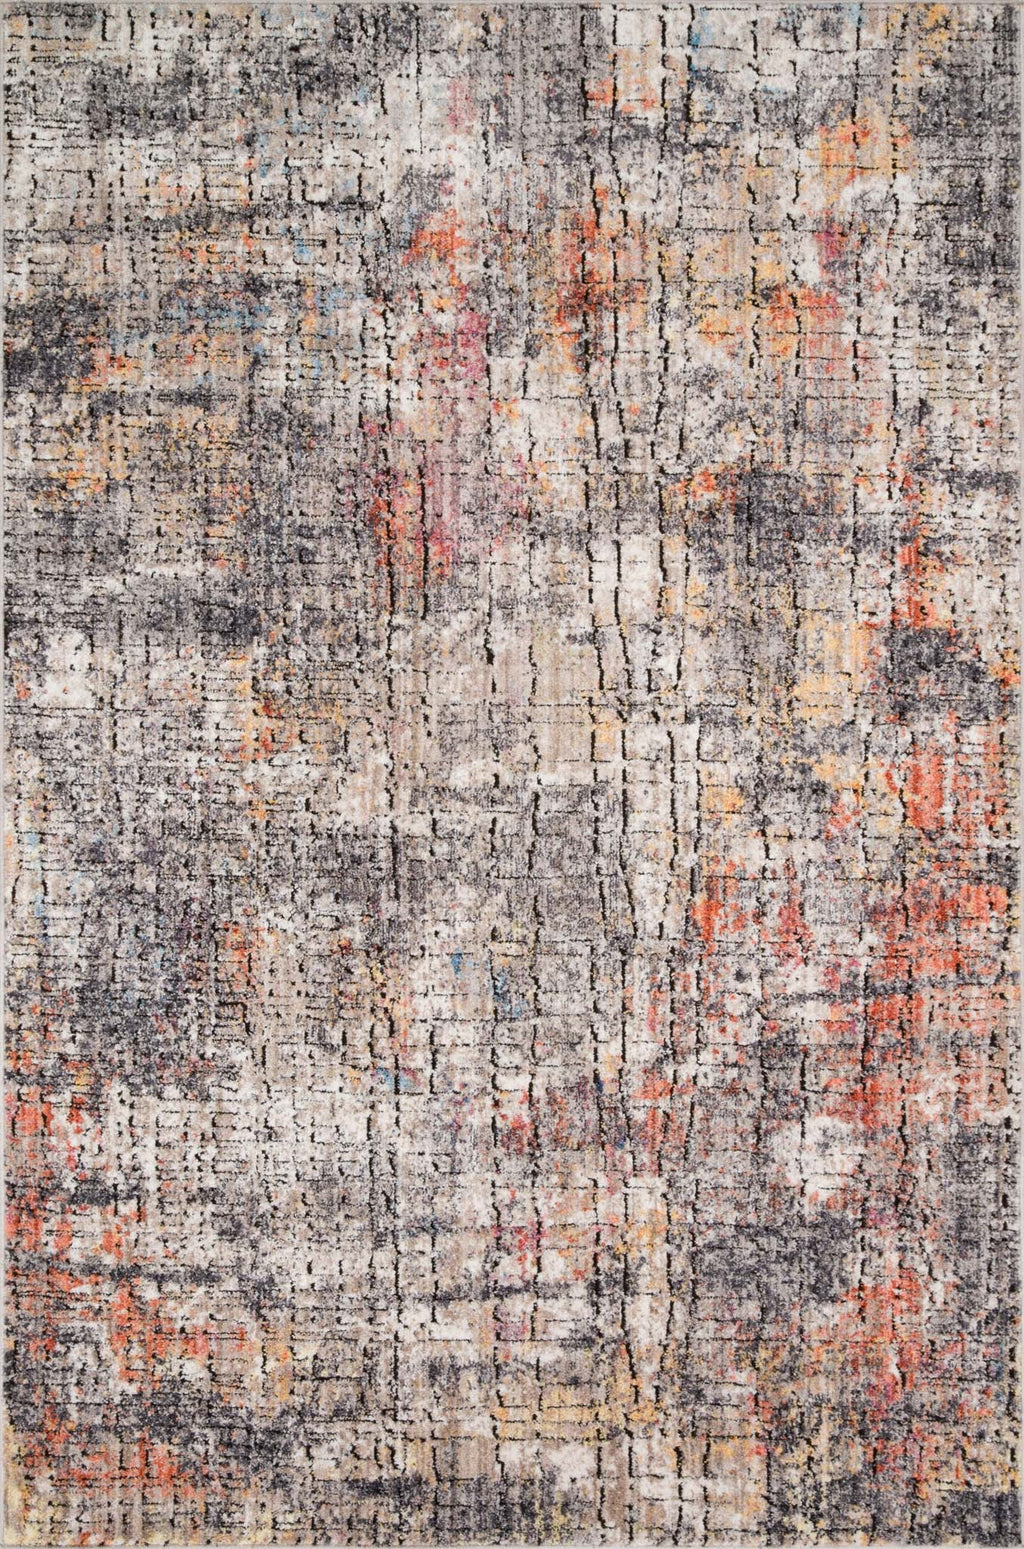 MEDUSA Collection Rug  in  GRAPHITE / SUNSET Gray Runner Power-Loomed Polyester